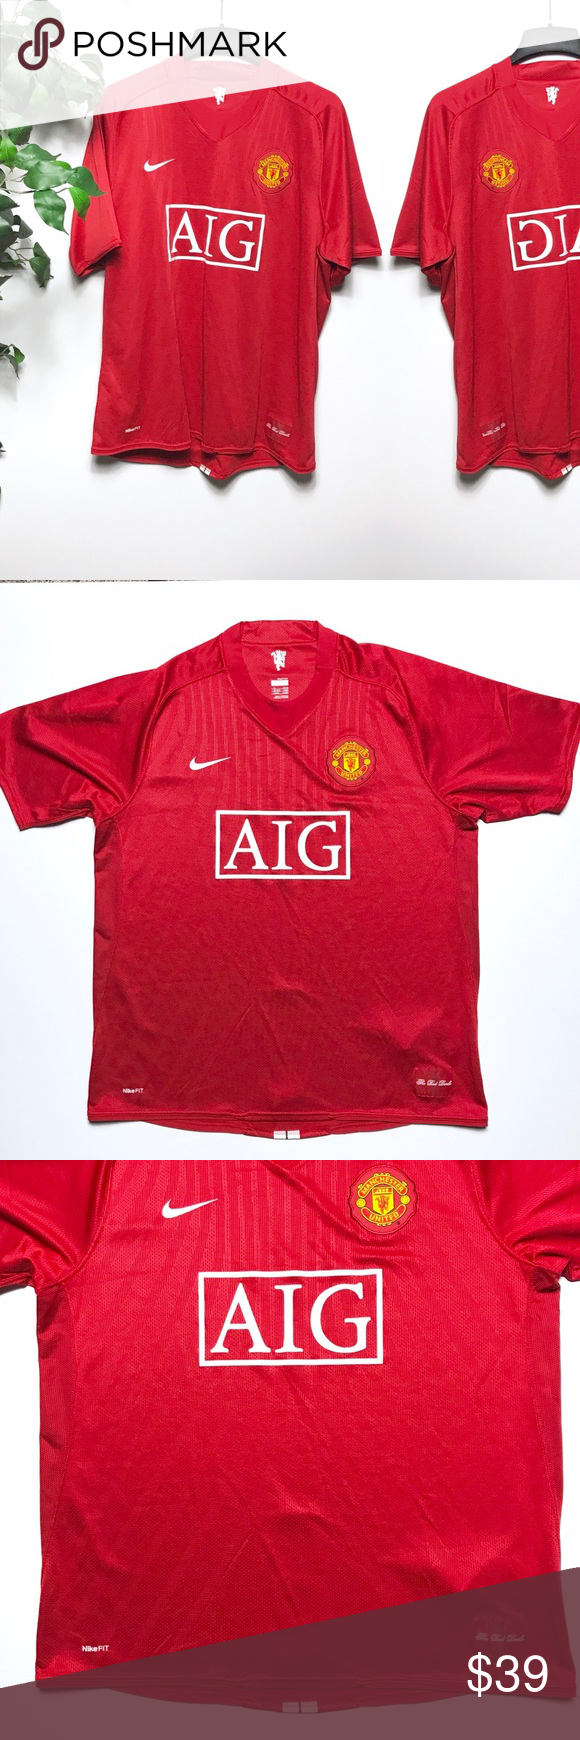 665ccdaf4f1 Nike AIG Manchester United Soccer Red Jersey - XL Awesome Nike fro-fit  Manchester United